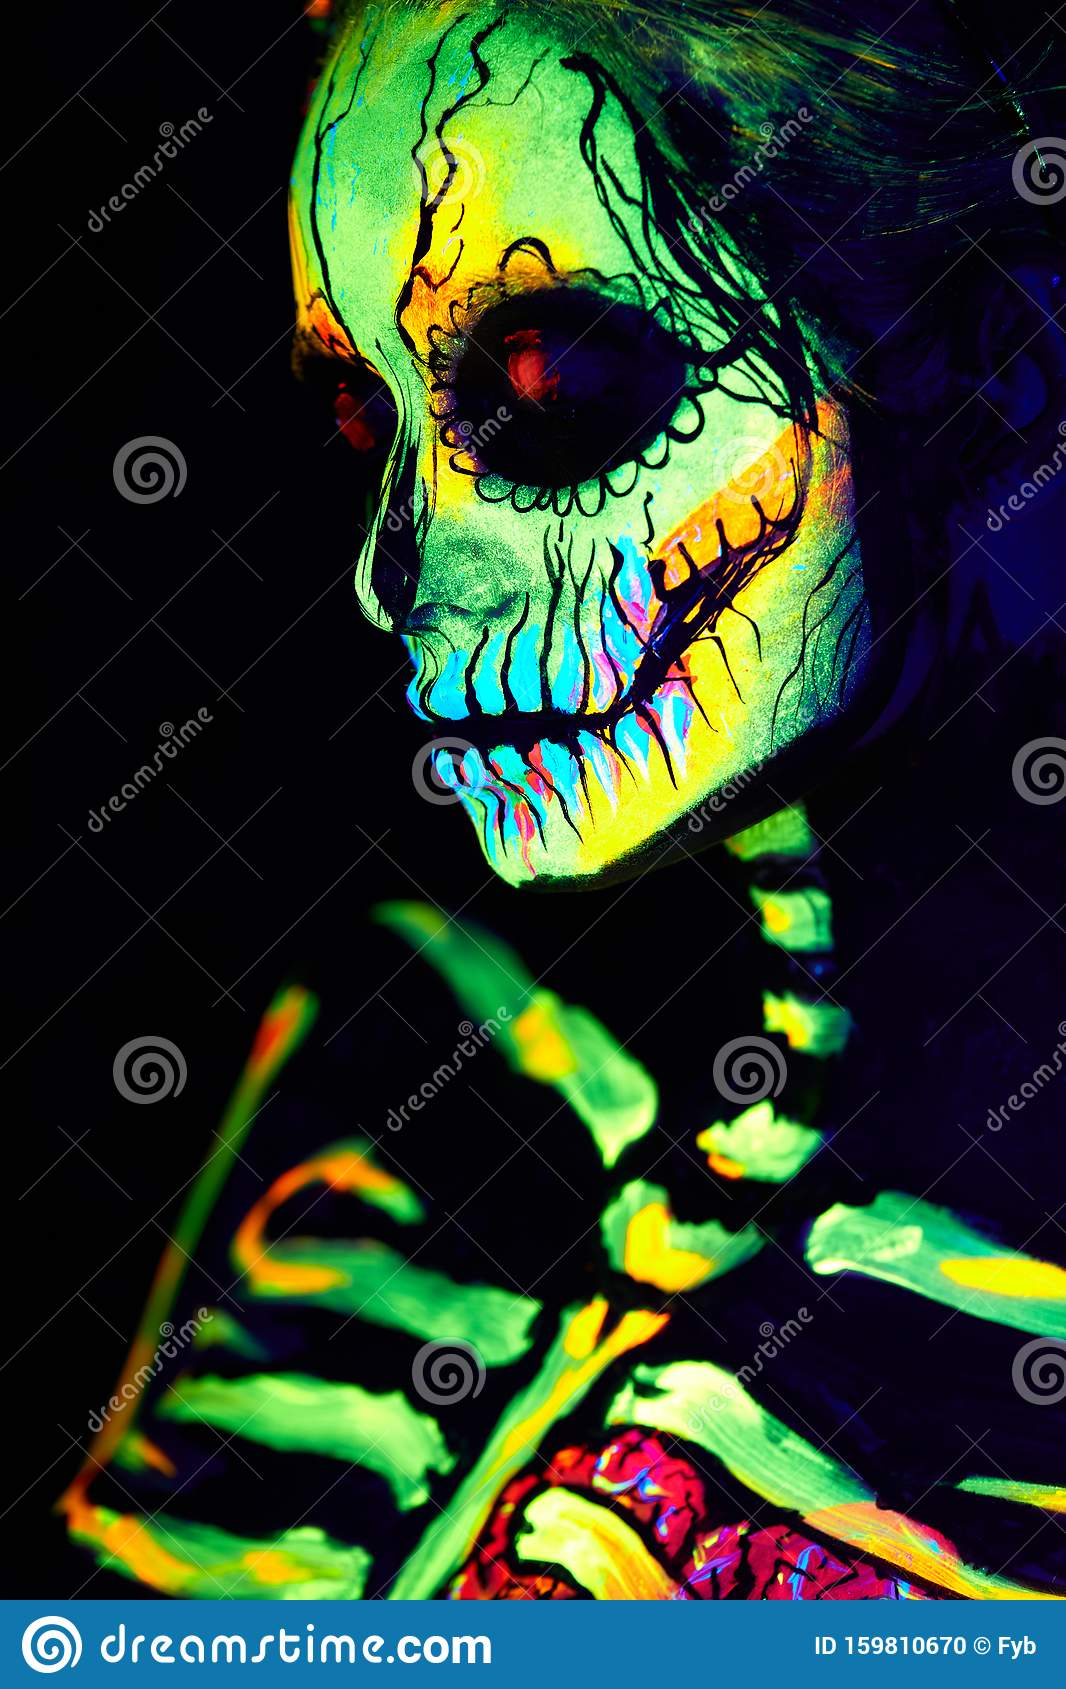 Uv Body Art Painting Of Helloween Female Skeleton Stock Photo Image Of Design Halloween 159810670